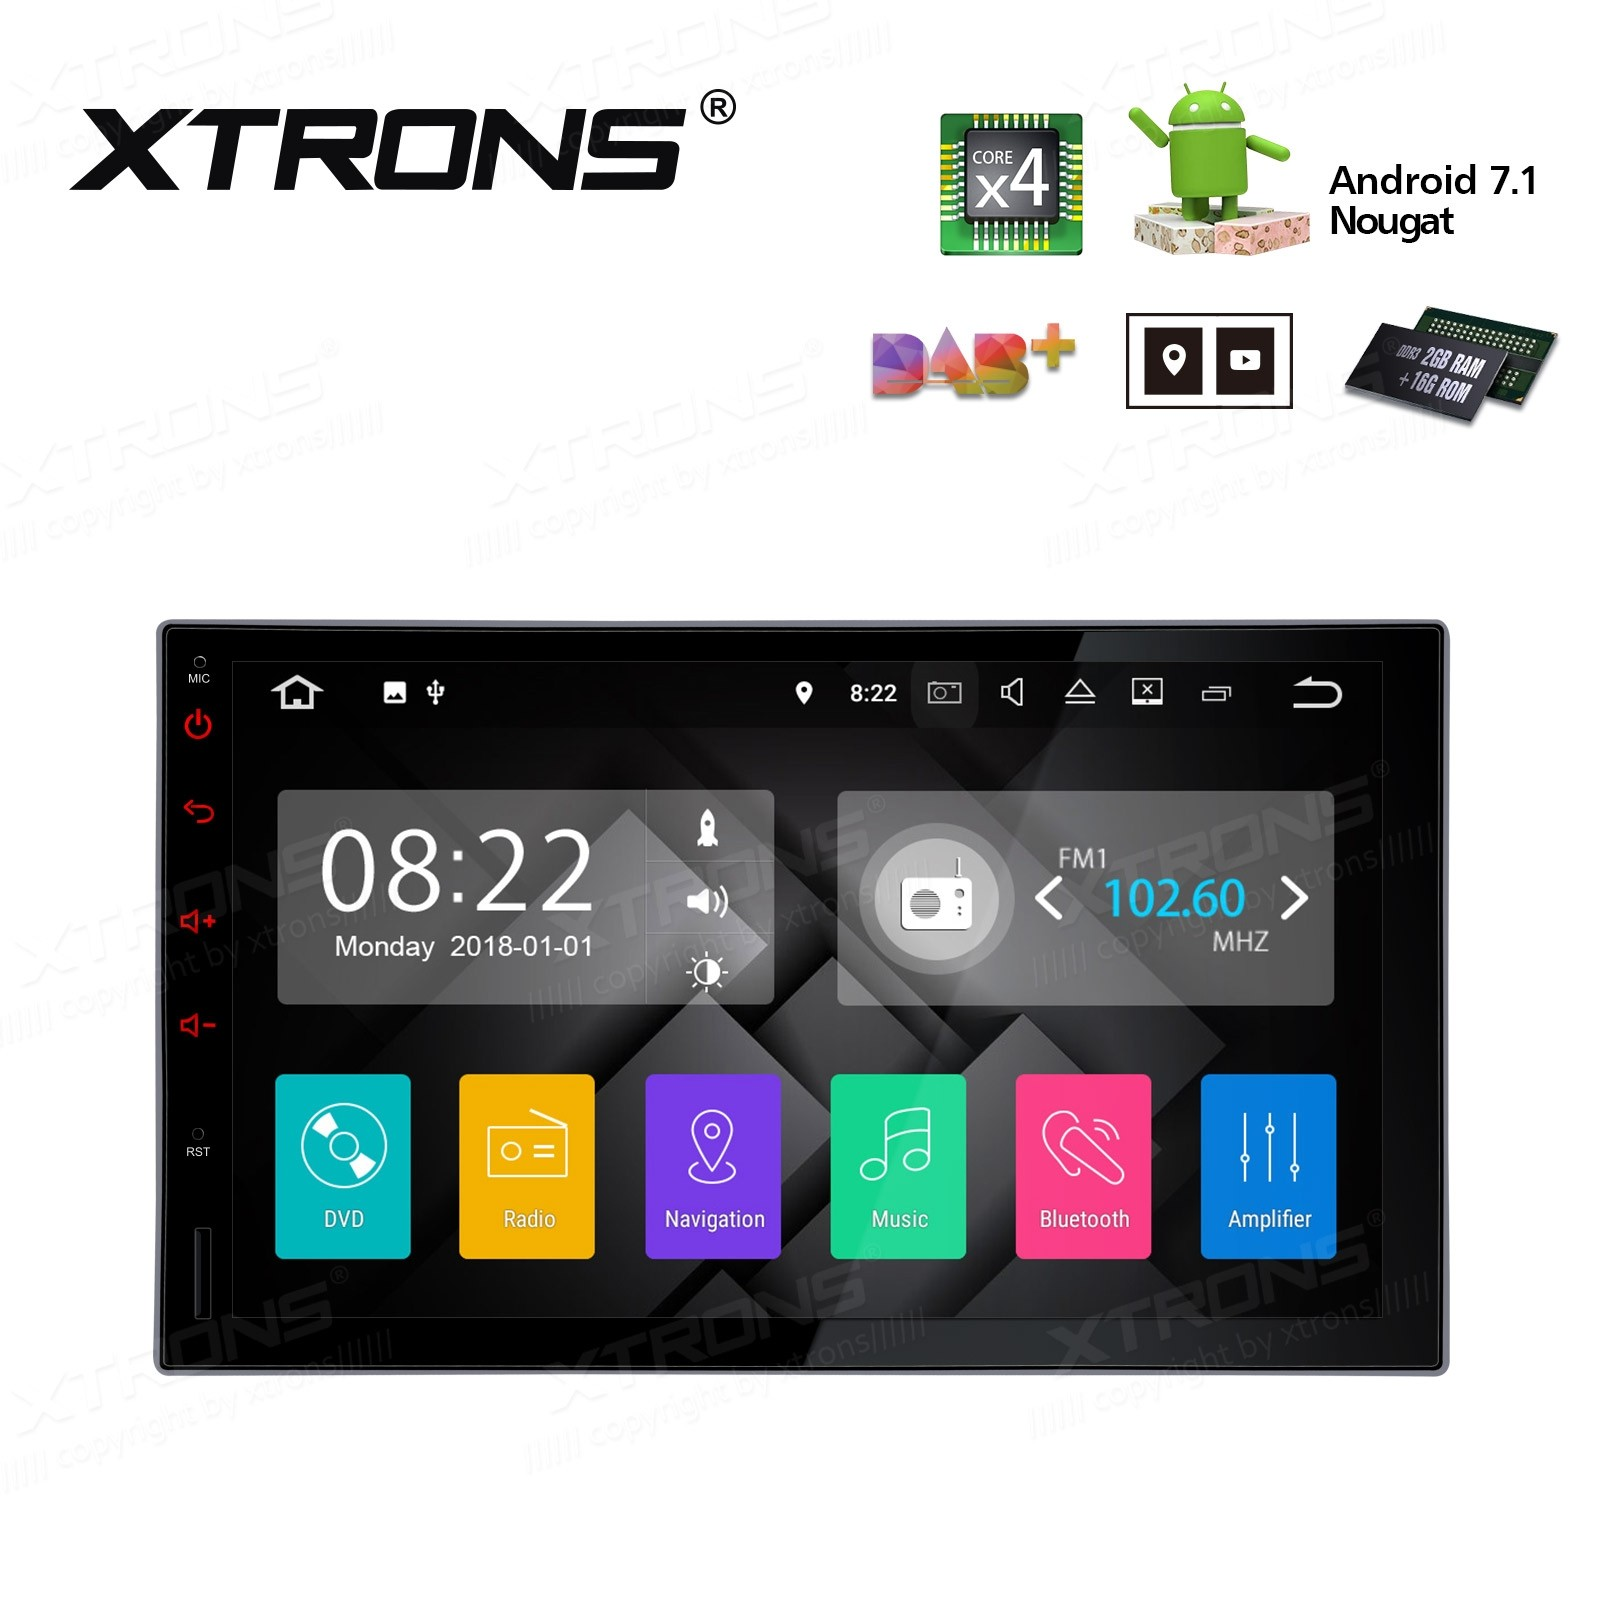 """7"""" HD Digital Muiti Touch Screen Android 7.1 Quad Core 16GB ROM + 2G DDR3 RAM Car Android Stereo"""